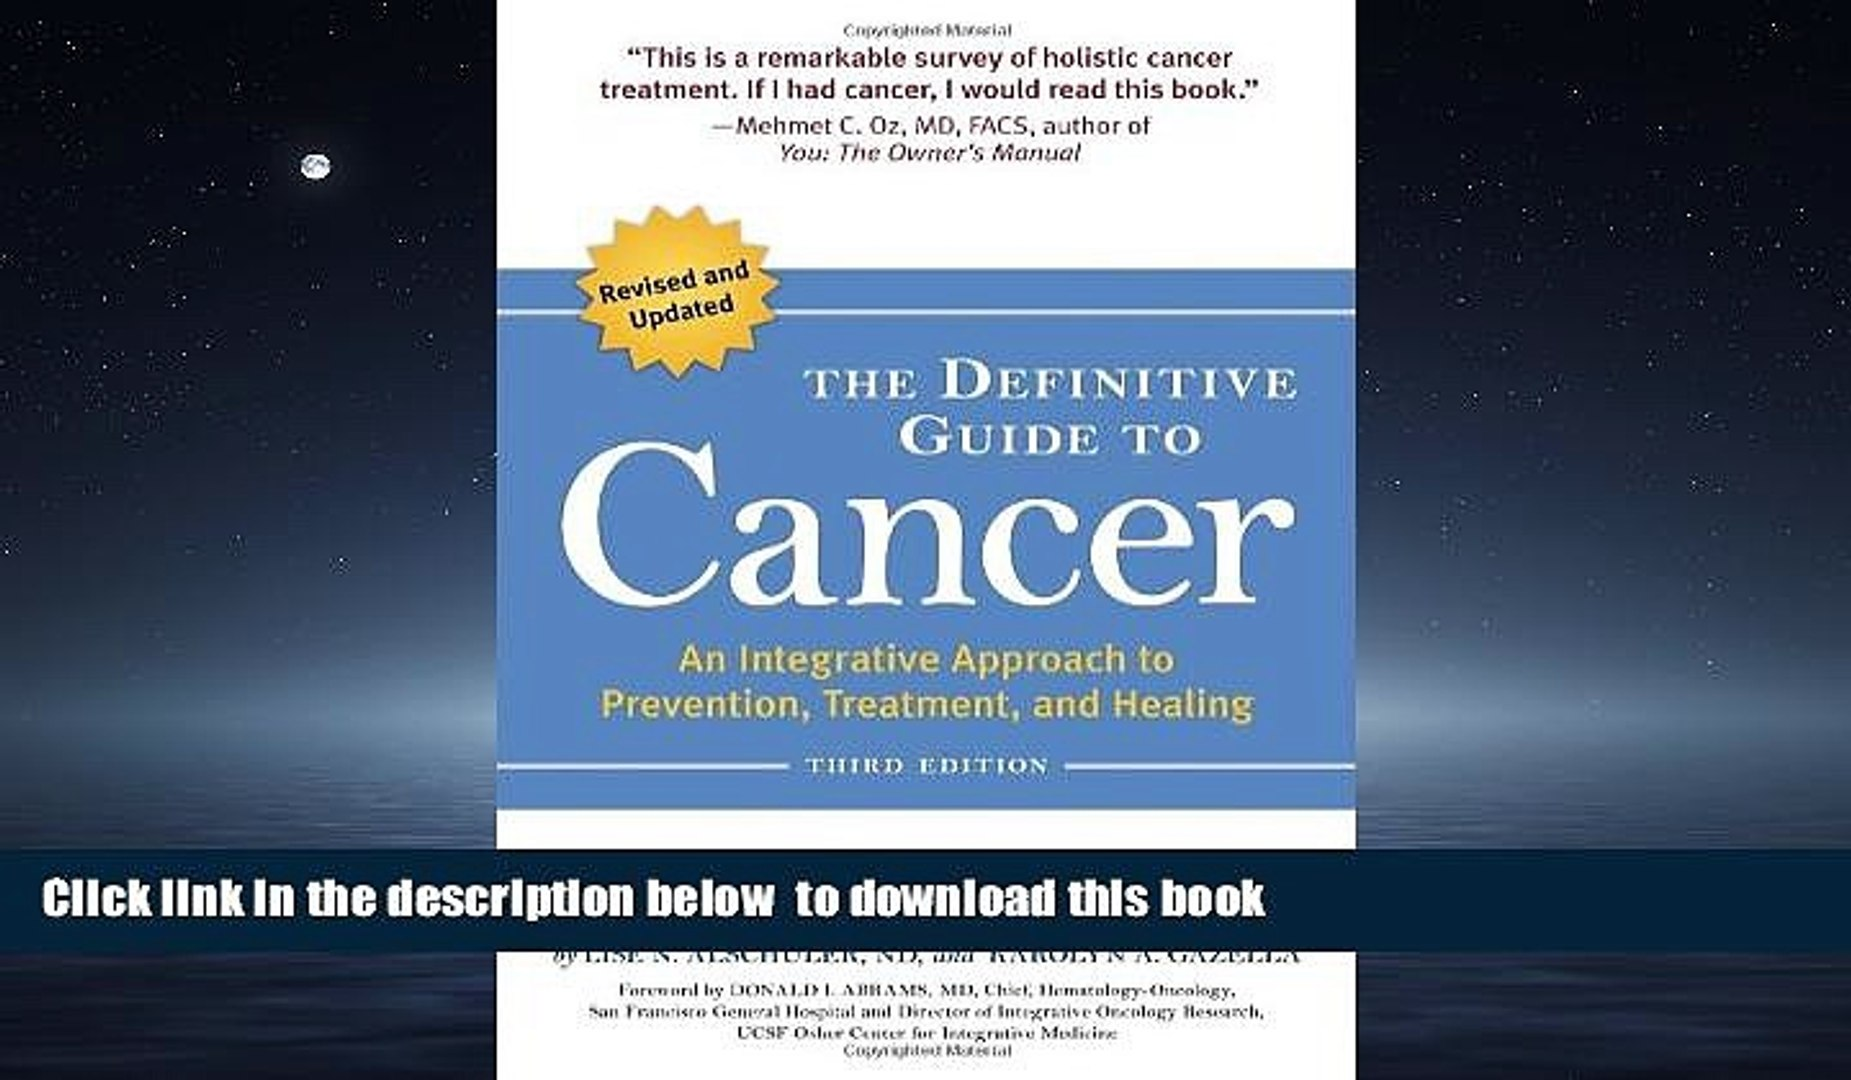 Treatment 3rd Edition: An Integrative Approach to Prevention and Healing The Definitive Guide to Cancer